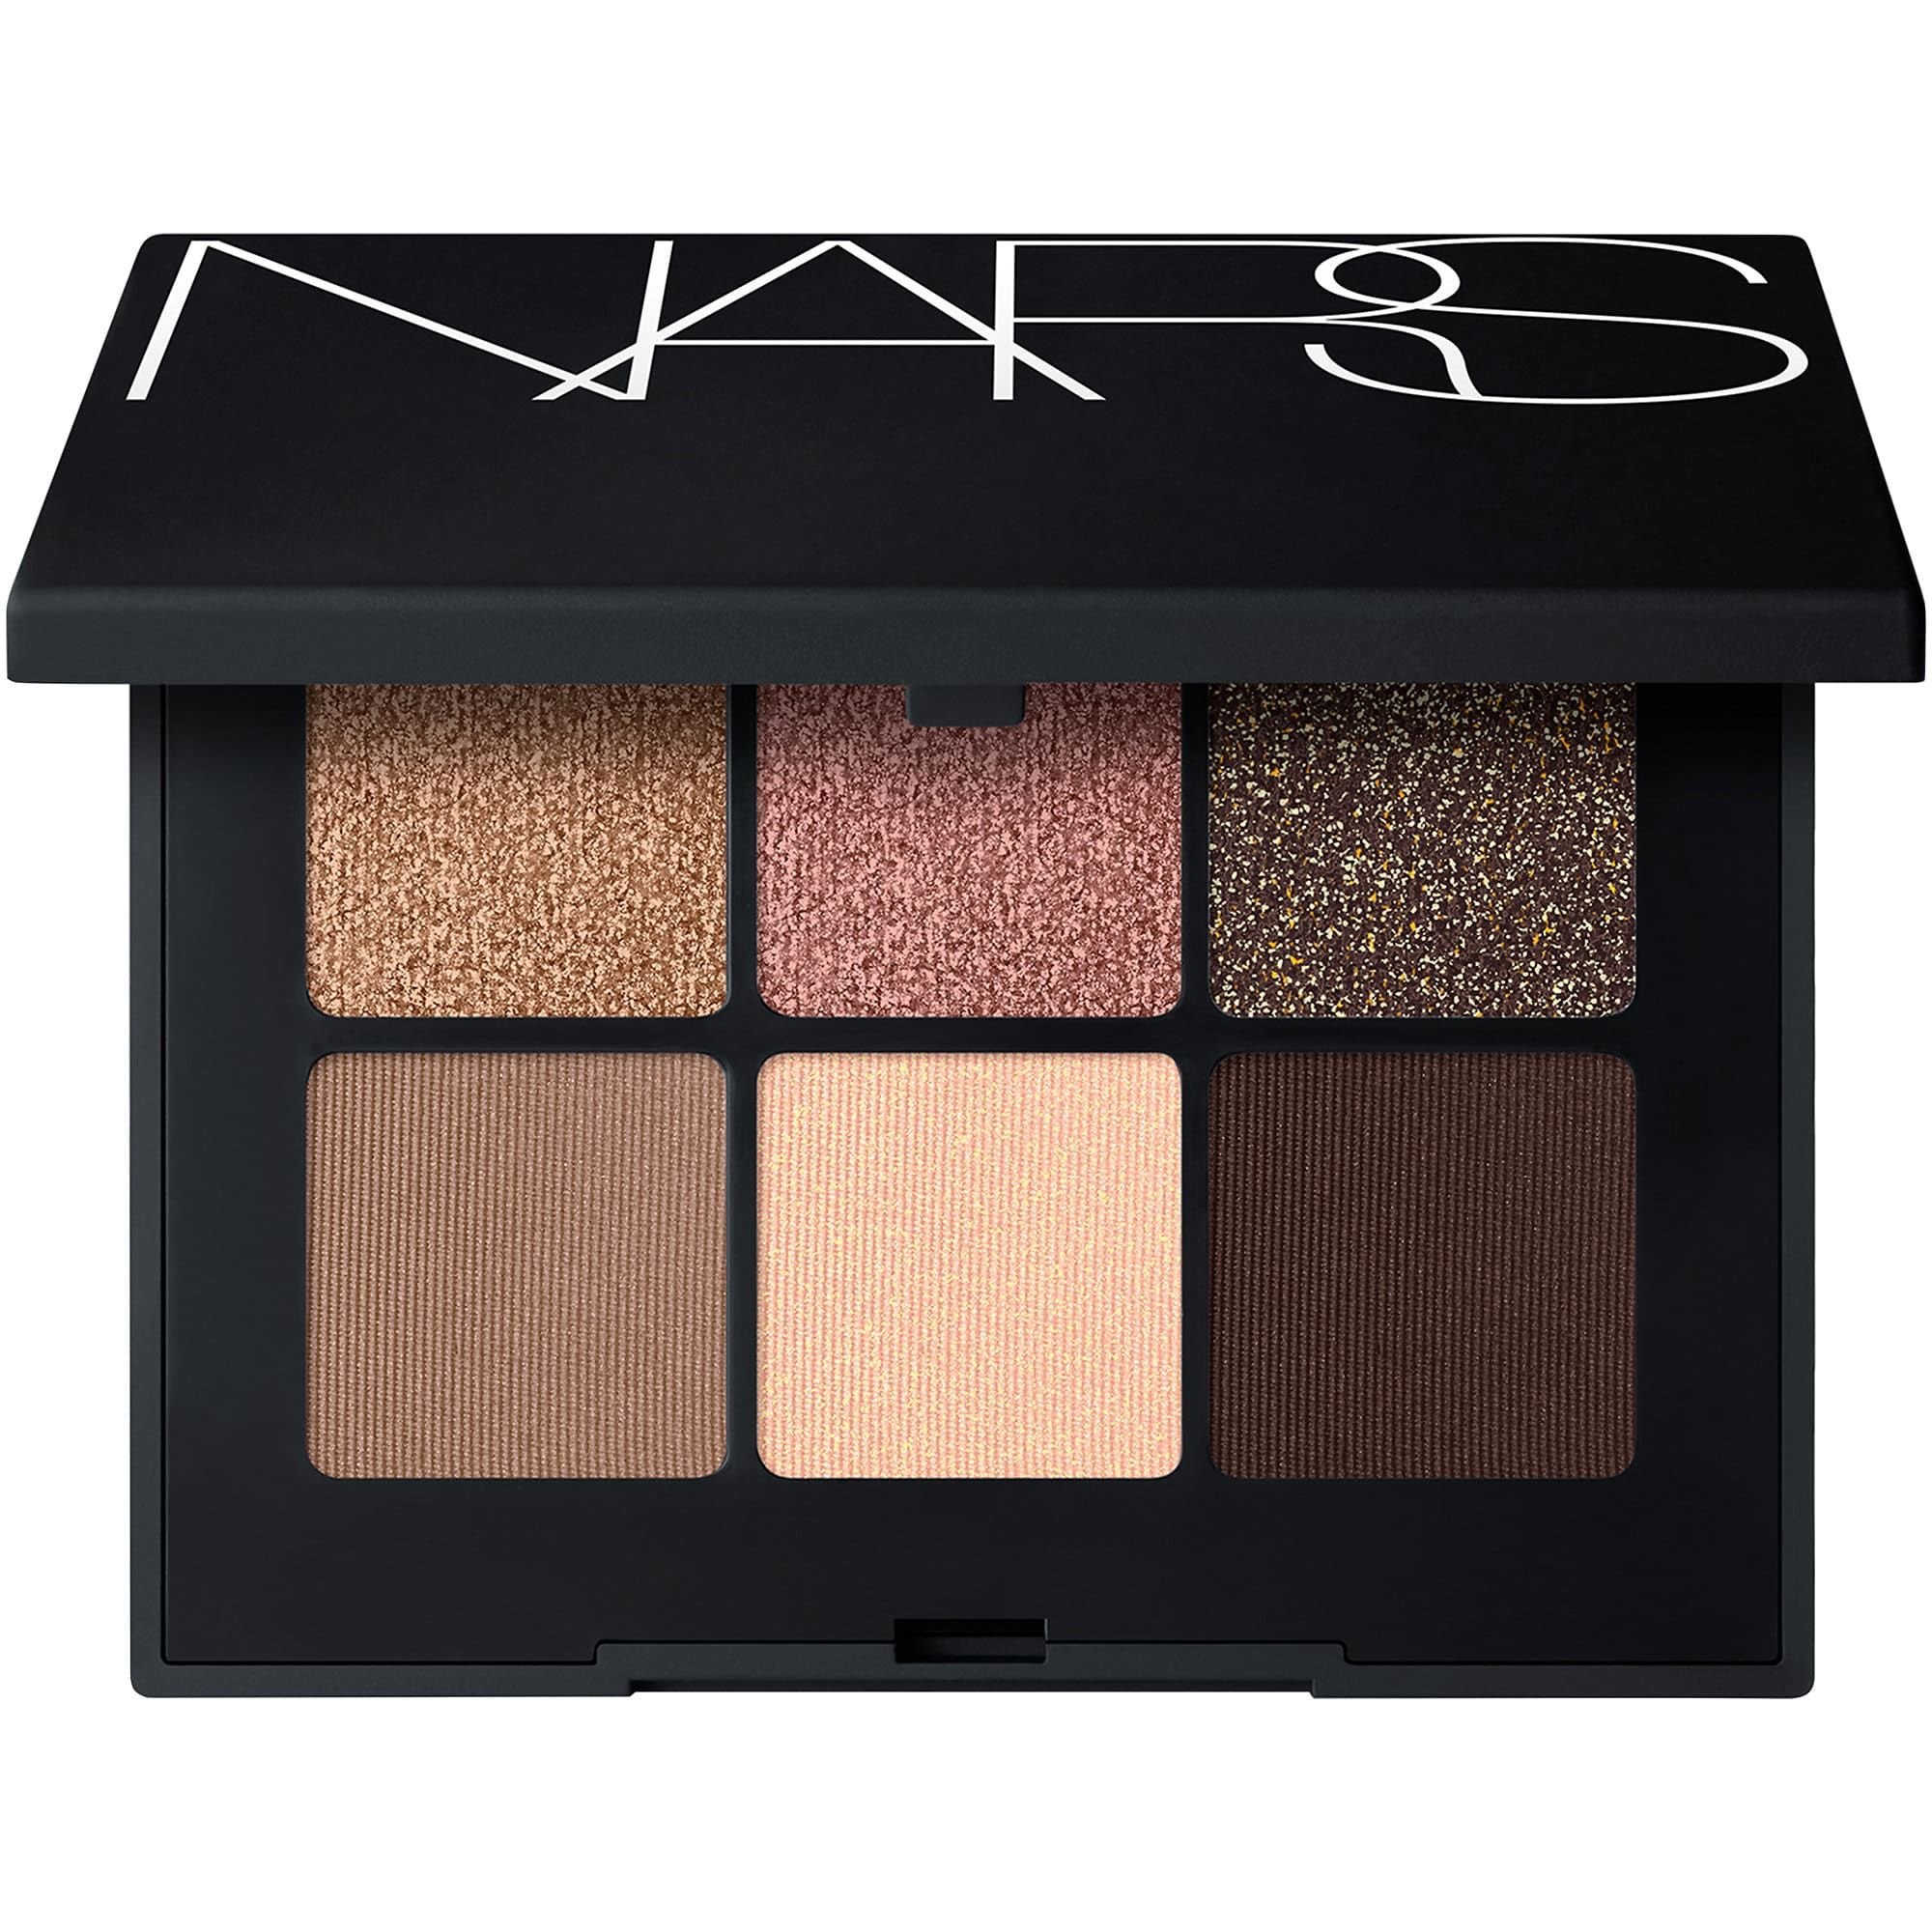 Voyageur Eyeshadow Palette Mini Nars Sephora In 2021 Eyeshadow Best Eyeshadow Eyeshadow Palette